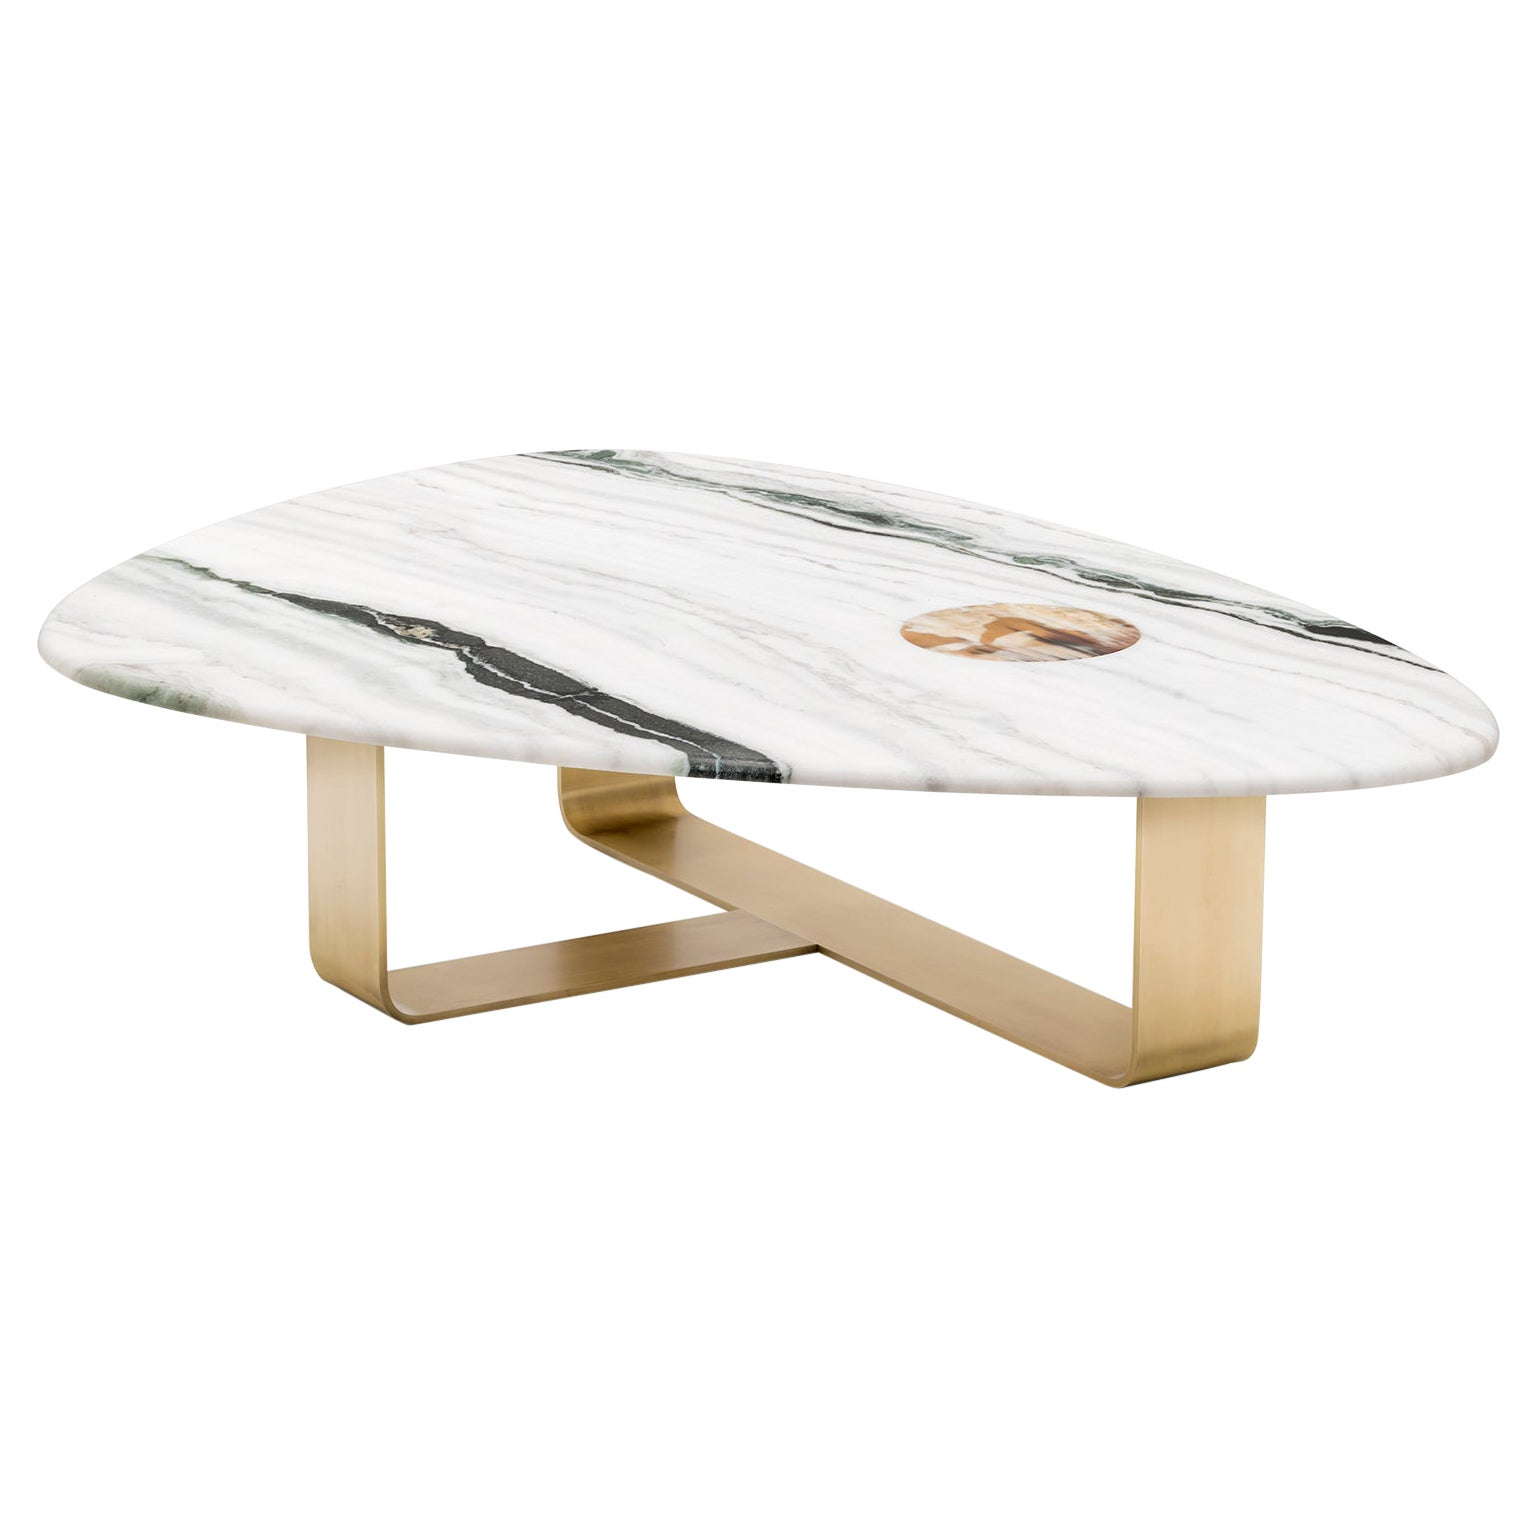 Demetra Coffee Table in Dalmata Marble with Corno Italiano Inlay, Mod. 7007